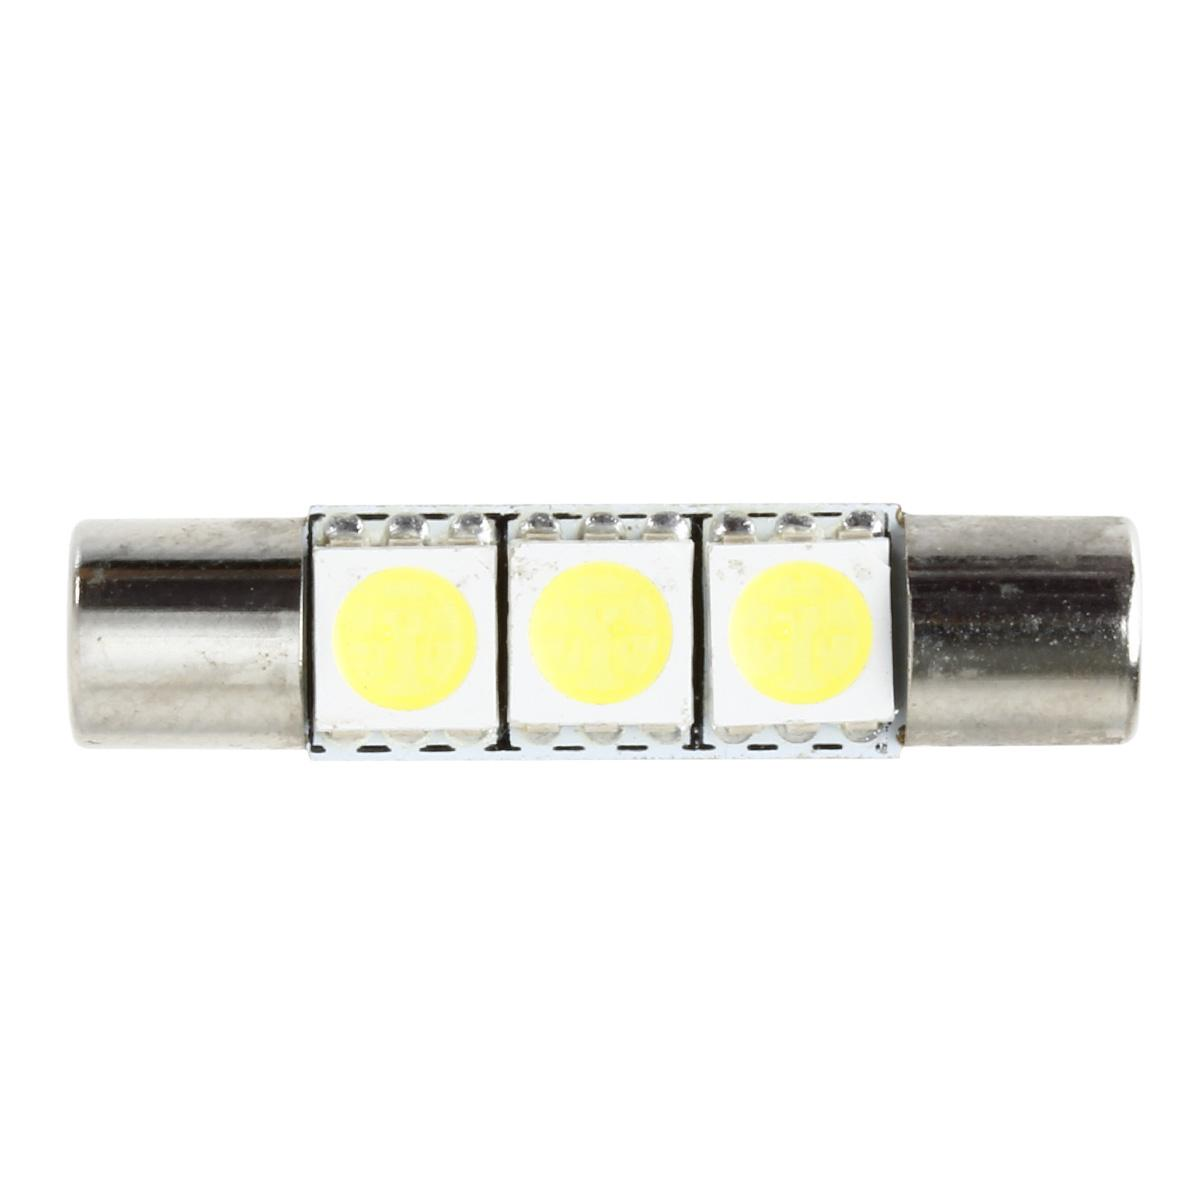 Vanity Mirror Led Light Bulbs : 10x Xenon White 3SMD 5050 LED Bulbs Interior Sun Visor Vanity Mirror Lights 6641 eBay